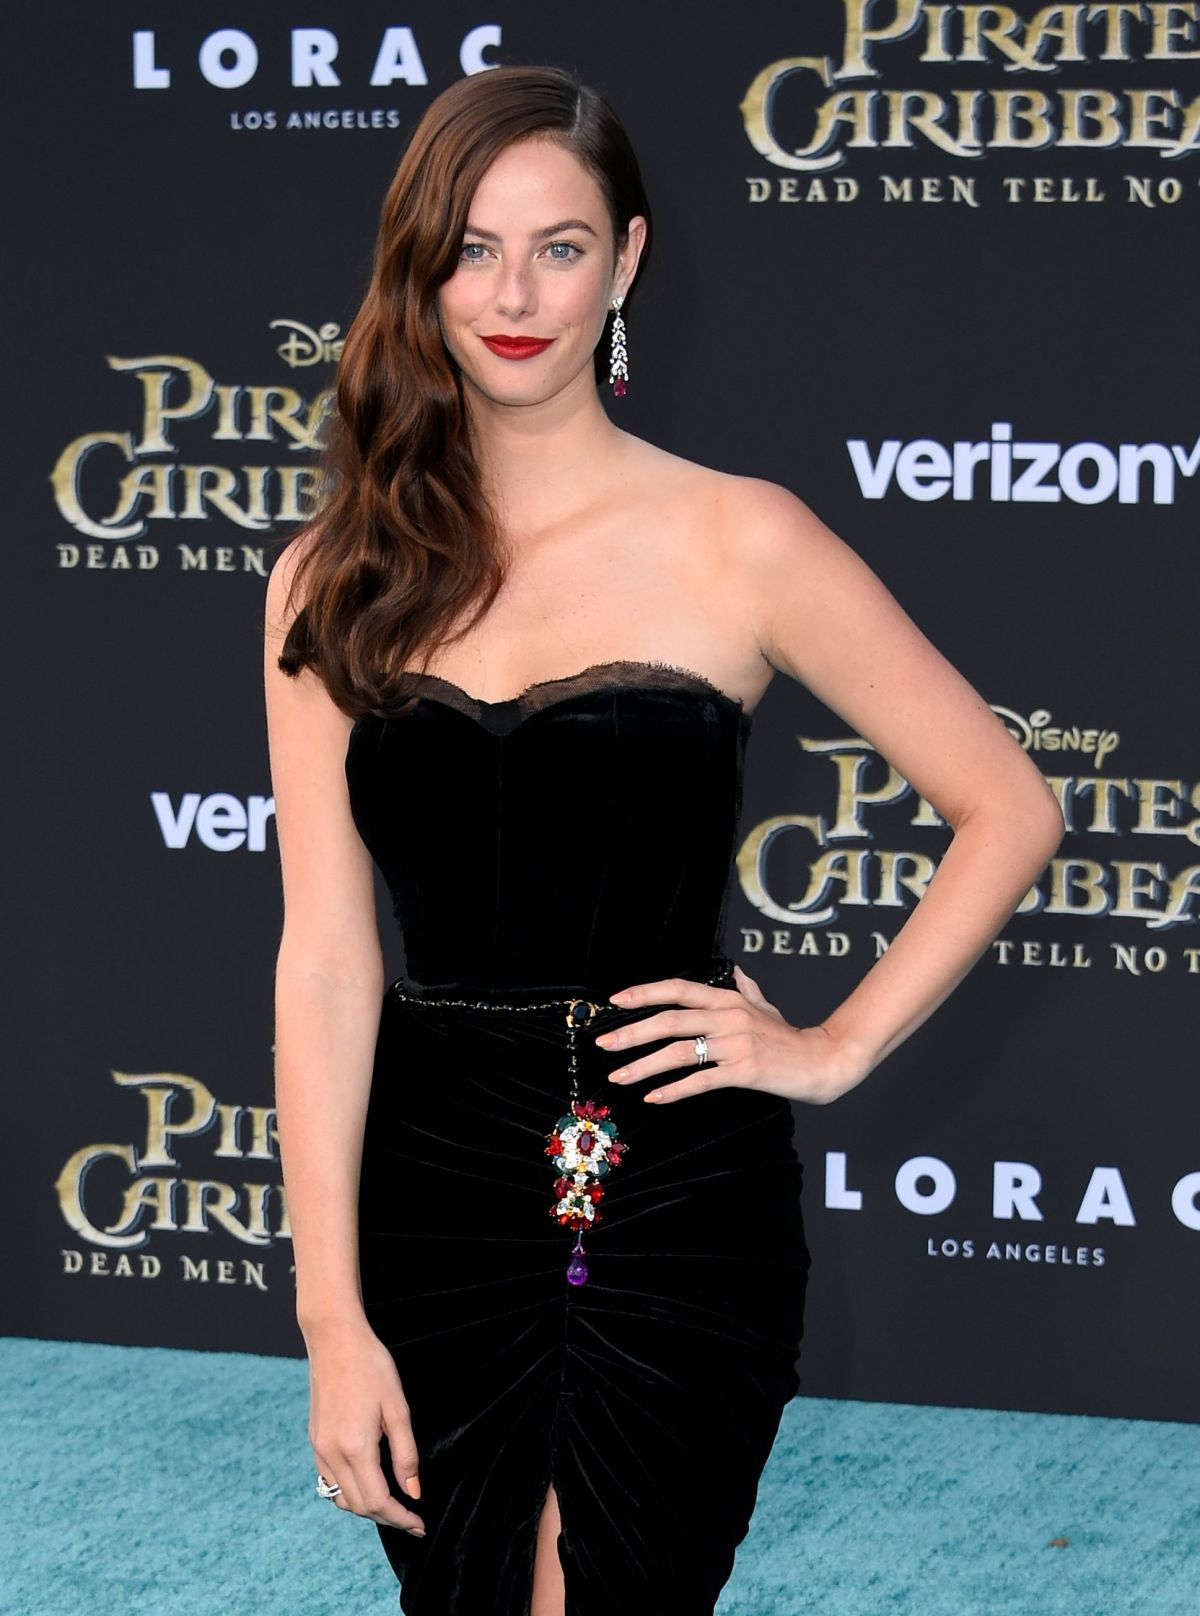 Kaya Scodelario at the 'Pirates of the Caribbean: Dead Men Tell No Tales' Hollywood premiere